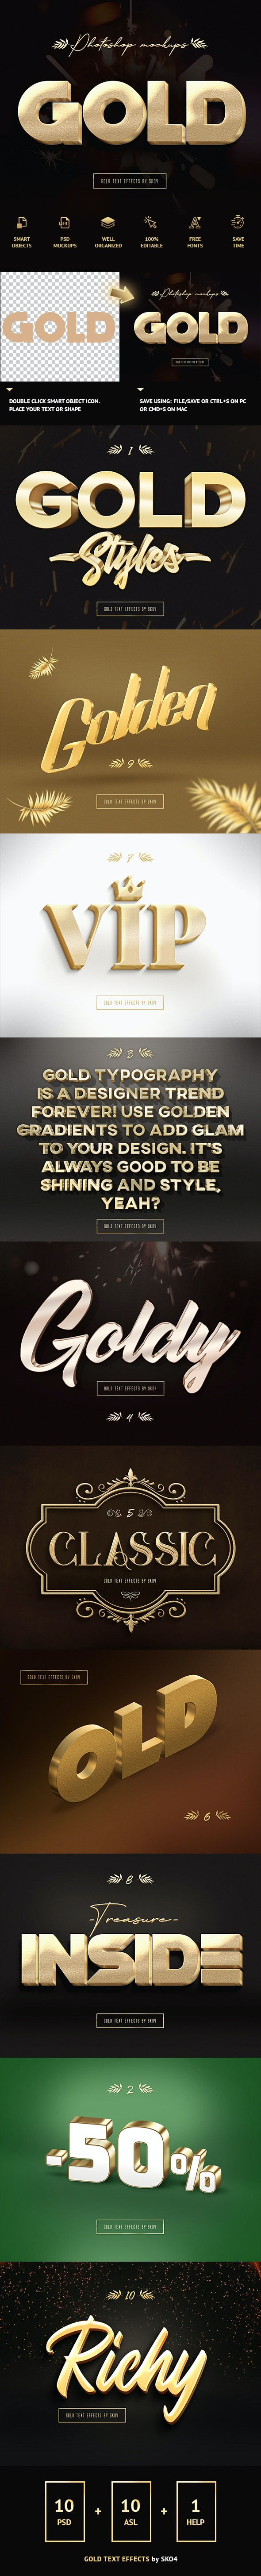 3D Gold Text Effects - Text Effects Actions